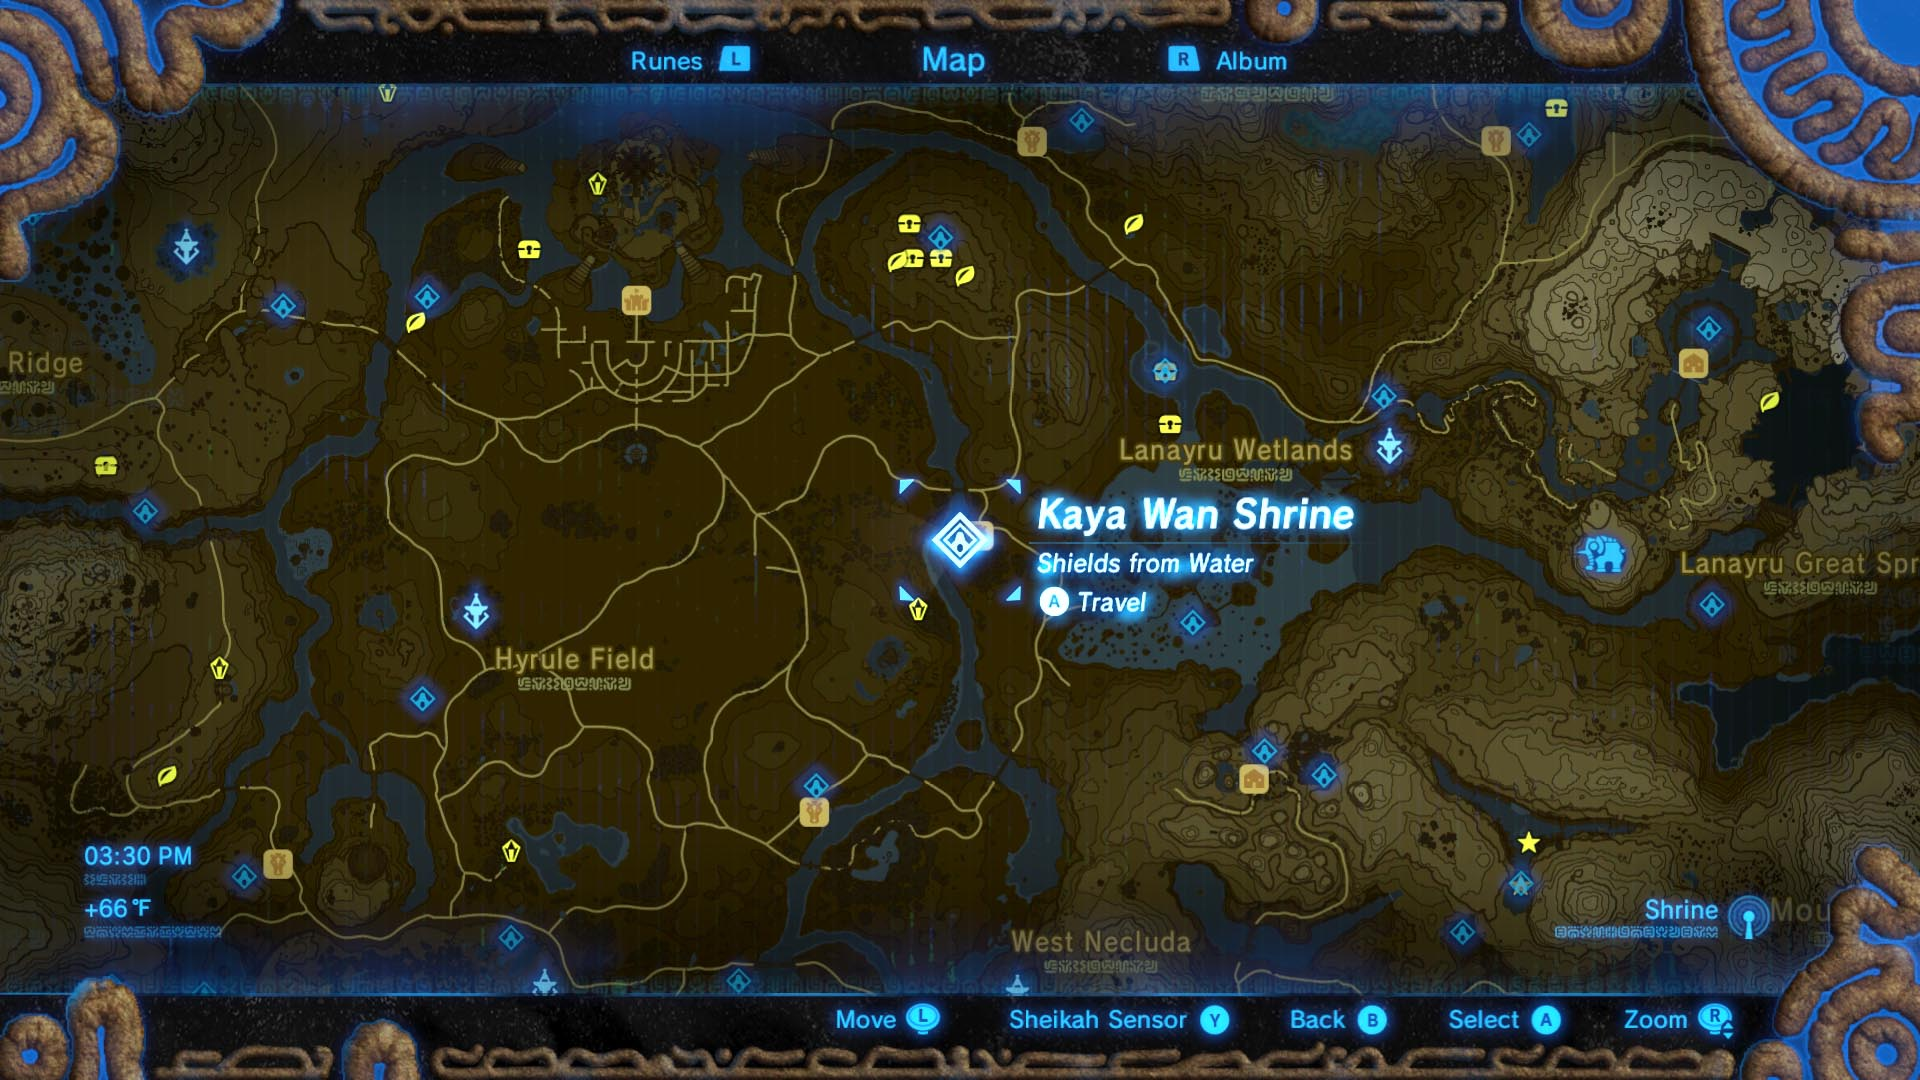 Zelda Botw Shrine Map >> Zelda: Breath of the Wild guide: Kaya Wan shrine location and puzzle solutions - Polygon